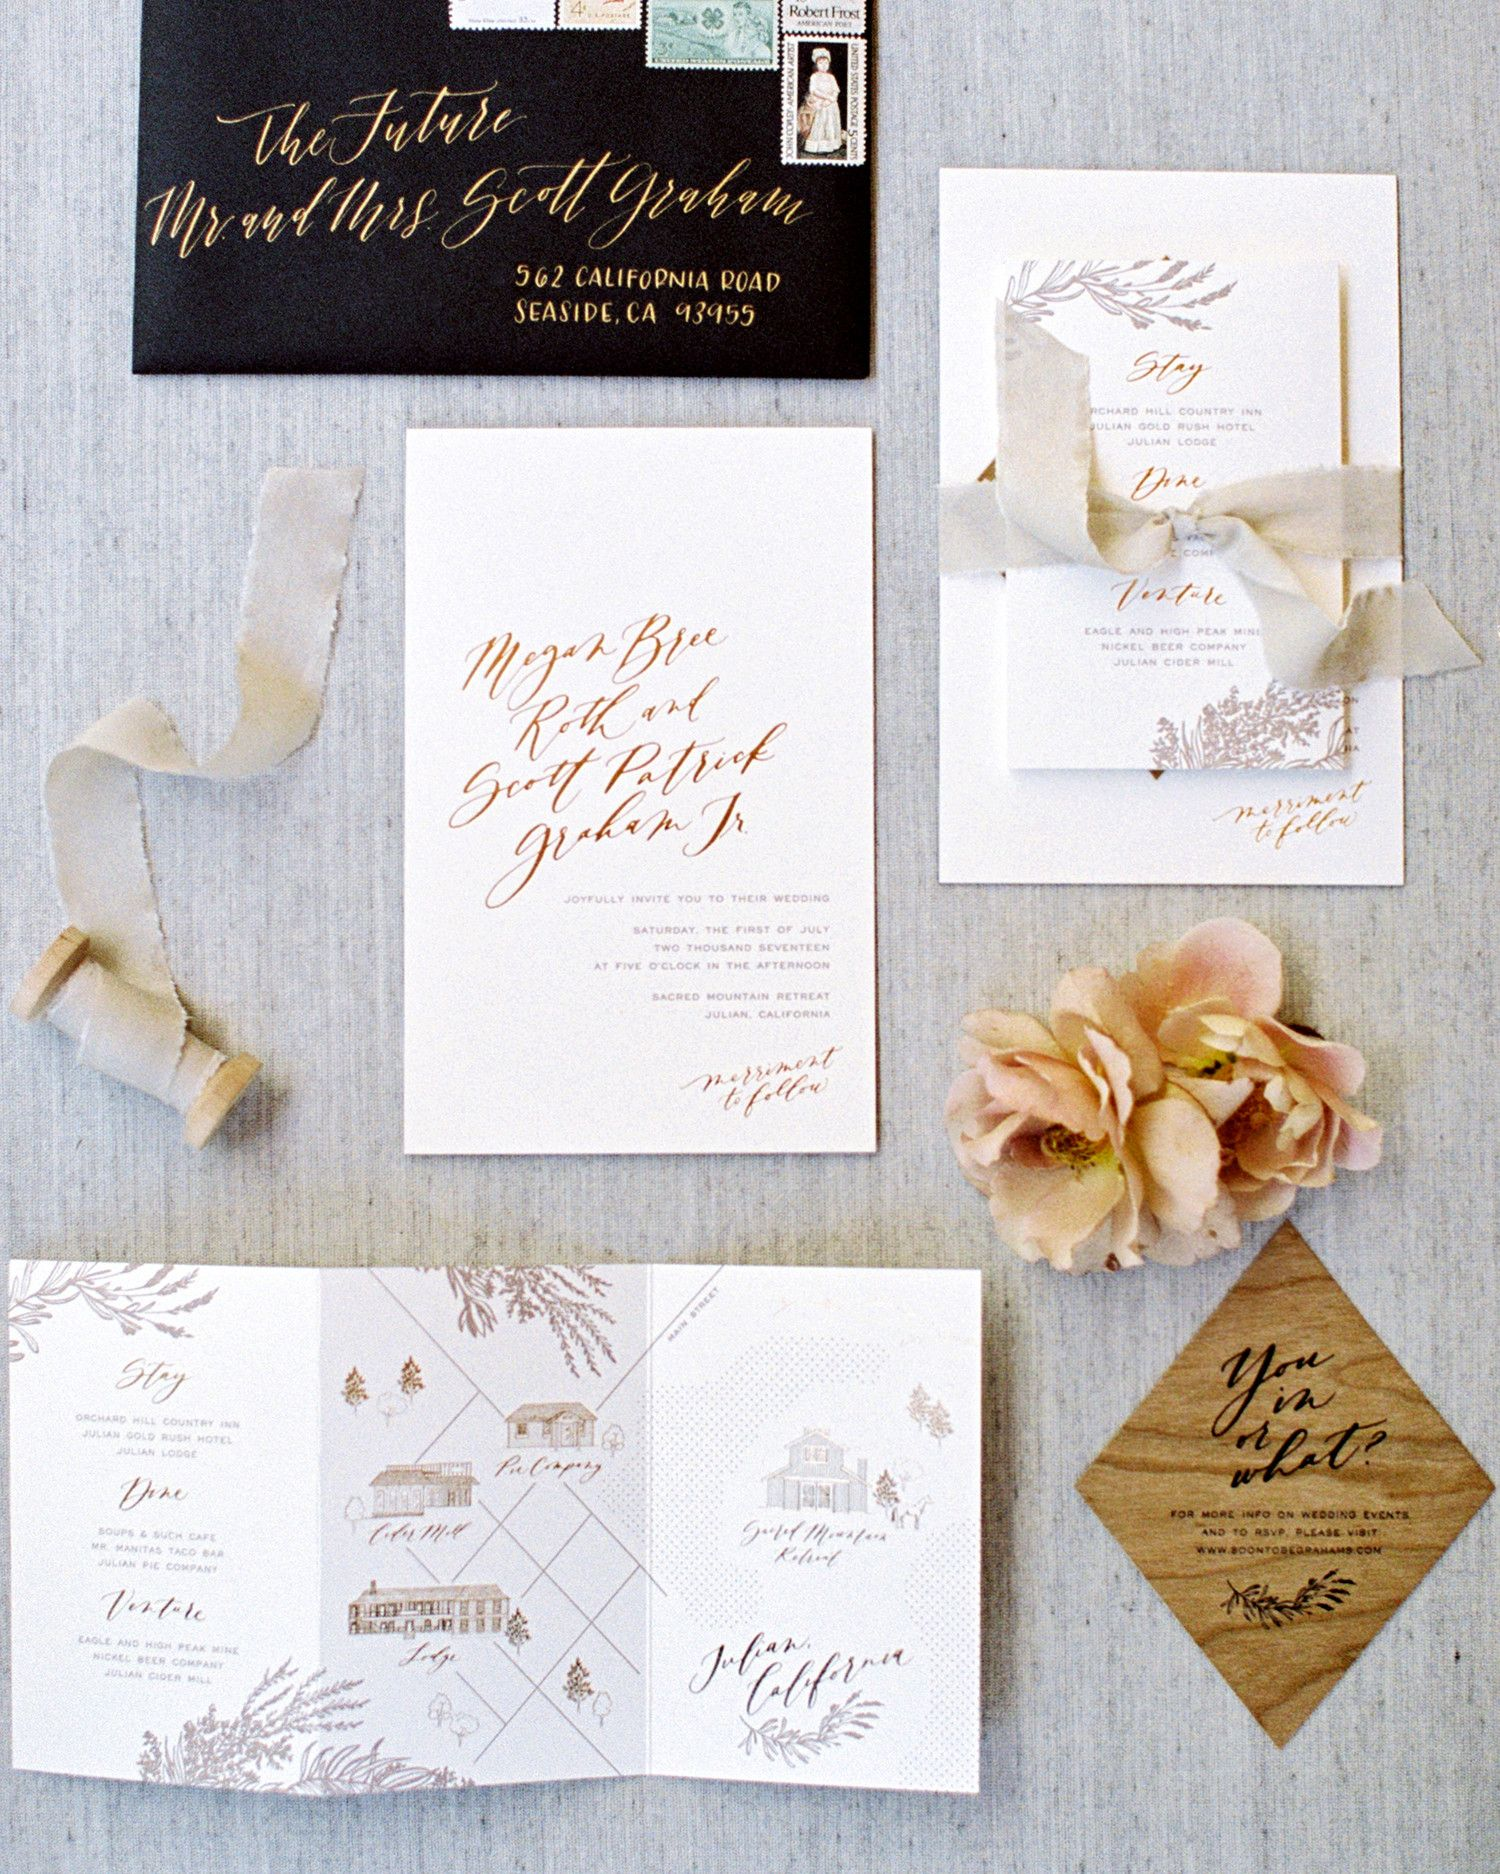 A Graphic Designer At Prim Pixie The Bride Decided To Create Stationery Suite Herself She Went With Letterpressed Taupe Ink Warm Gold Foil